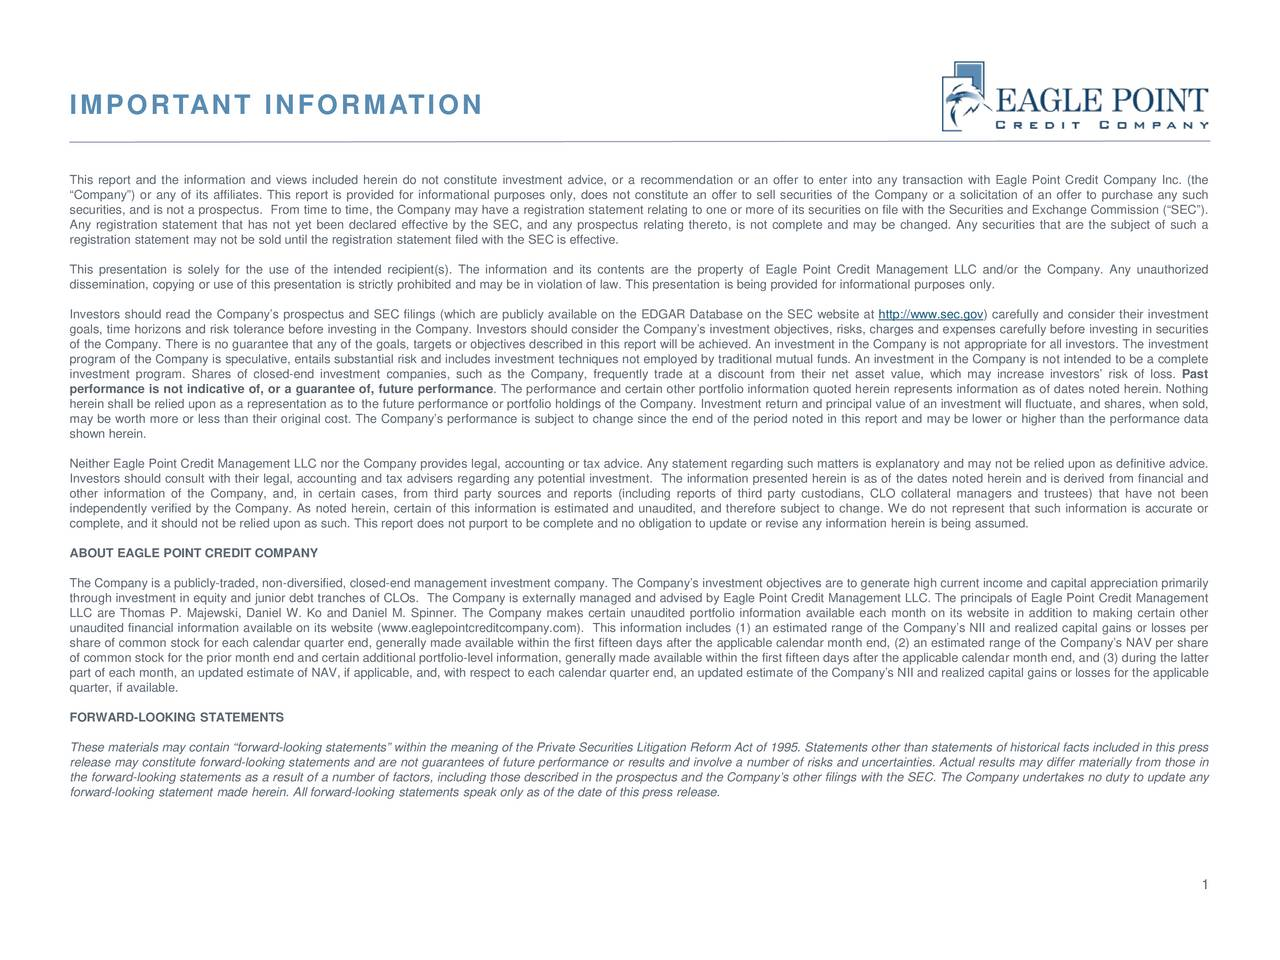 This report and the information and views included herein do not constitute investment advice, or a recommendation or an offer to enter into any transaction with Eagle Point Credit Company Inc. (the Company) or any of its affiliates. This report is provided for informational purposes only, does not constitute an offer to sell securities of the Company or a solicitation of an offer to purchase any such securities, and is not a prospectus. From time to time, the Company may have a registration statement relating to one or more of its securities on file with the Securities and Exchange Commission (SEC). Any registration statement that has not yet been declared effective by the SEC, and any prospectus relating thereto, is not complete and may be changed. Any securities that are the subject of such a registration statement may not be sold until the registration statement filed with the SEC is effective. This presentation is solely for the use of the intended recipient(s). The information and its contents are the property of Eagle Point Credit Management LLC and/or the Company. Any unauthorized dissemination, copying or use of this presentation is strictly prohibited and may be in violation of law. This presentation is being provided for informational purposes only. Investors should read the Companys prospectus and SEC filings (which are publicly available on the EDGAR Database on the SEC website at http://www.sec.gov) carefully and consider their investment goals, time horizons and risk tolerance before investing in the Company. Investors should consider the Companys investment objectives, risks, charges and expenses carefully before investing in securities of the Company. There is no guarantee that any of the goals, targets or objectives described in this report will be achieved. An investment in the Company is not appropriate for all investors. The investment program of the Company is speculative, entails substantial risk and includes investment techniques not employed by traditional mutual funds. An investment in the Company is not intended to be a complete investment program. Shares of closed-end investment companies, such as the Company, frequently trade at a discount from their net asset value, which may increase investors risk of loss. Past performance is not indicative of, or a guarantee of, future performance. The performance and certain other portfolio information quoted herein represents information as of dates noted herein. Nothing herein shall be relied upon as a representation as to the future performance or portfolio holdings of the Company. Investment return and principal value of an investment will fluctuate, and shares, when sold, may be worth more or less than their original cost. The Companys performance is subject to change since the end of the period noted in this report and may be lower or higher than the performance data shown herein. Neither Eagle Point Credit Management LLC nor the Company provides legal, accounting or tax advice. Any statement regarding such matters is explanatory and may not be relied upon as definitive advice. Investors should consult with their legal, accounting and tax advisers regarding any potential investment. The information presented herein is as of the dates noted herein and is derived from financial and other information of the Company, and, in certain cases, from third party sources and reports (including reports of third party custodians, CLO collateral managers and trustees) that have not been independently verified by the Company. As noted herein, certain of this information is estimated and unaudited, and therefore subject to change. We do not represent that such information is accurate or complete, and it should not be relied upon as such. This report does not purport to be complete and no obligation to update or revise any information herein is being assumed. ABOUT EAGLE POINT CREDIT COMPANY The Company is a publicly-traded, non-diversified, closed-end management investment company. The Companys investment objectives are to generate high current income and capital appreciation primarily through investment in equity and junior debt tranches of CLOs. The Company is externally managed and advised by Eagle Point Credit Management LLC. The principals of Eagle Point Credit Management LLC are Thomas P. Majewski, Daniel W. Ko and Daniel M. Spinner. The Company makes certain unaudited portfolio information available each month on its website in addition to making certain other unaudited financial information available on its website (www.eaglepointcreditcompany.com). This information includes (1) an estimated range of the Companys NII and realized capital gains or losses per share of common stock for each calendar quarter end, generally made available within the first fifteen days after the applicable calendar month end, (2) an estimated range of the Companys NAV per share of common stock for the prior month end and certain additional portfolio-level information, generally made available within the first fifteen days after the applicable calendar month end, and (3) during the latter part of each month, an updated estimate of NAV, if applicable, and, with respect to each calendar quarter end, an updated estimate of the Companys NII and realized capital gains or losses for the applicable quarter, if available. FORWARD-LOOKING STATEMENTS These materials may contain forward-looking statements within the meaning of the Private Securities Litigation Reform Act of 1995. Statements other than statements of historical facts included in this press release may constitute forward-looking statements and are not guarantees of future performance or results and involve a number of risks and uncertainties. Actual results may differ materially from those in the forward-looking statements as a result of a number of factors, including those described in the prospectus and the Companys other filings with the SEC. The Company undertakes no duty to update any forward-looking statement made herein. All forward-looking statements speak only as of the date of this press release. 1